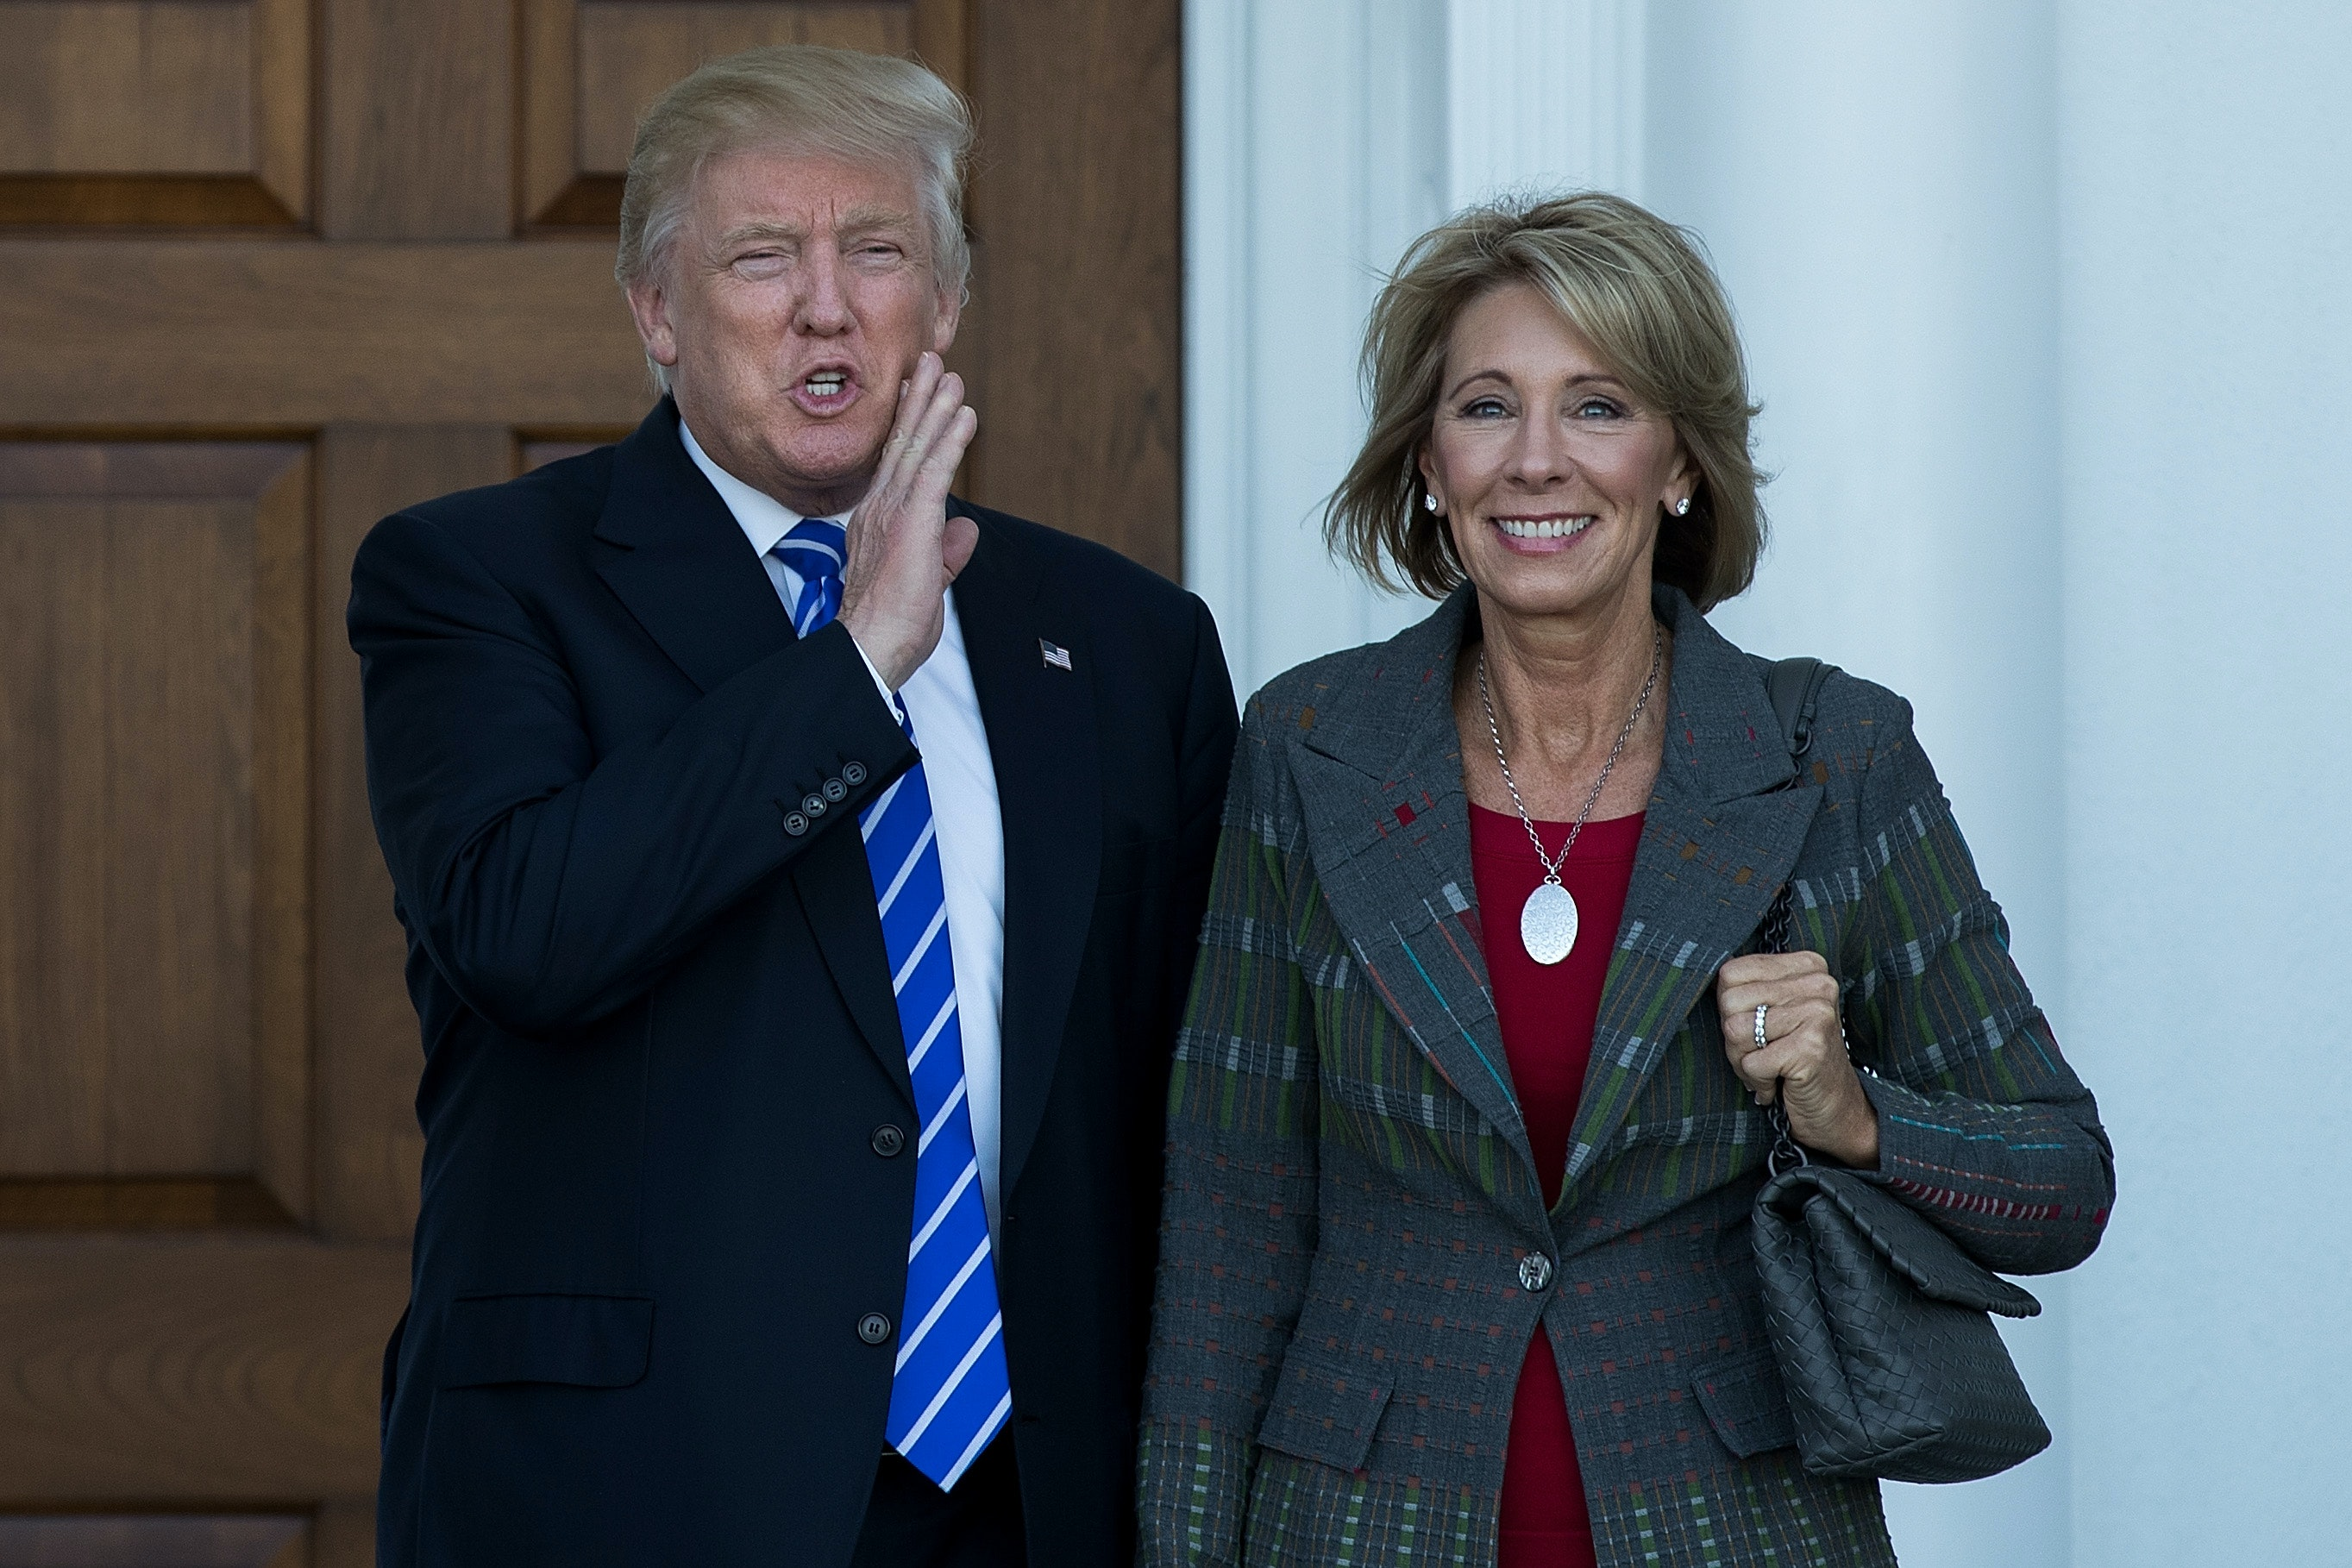 What We Know About Betsy DeVos' Views on Education